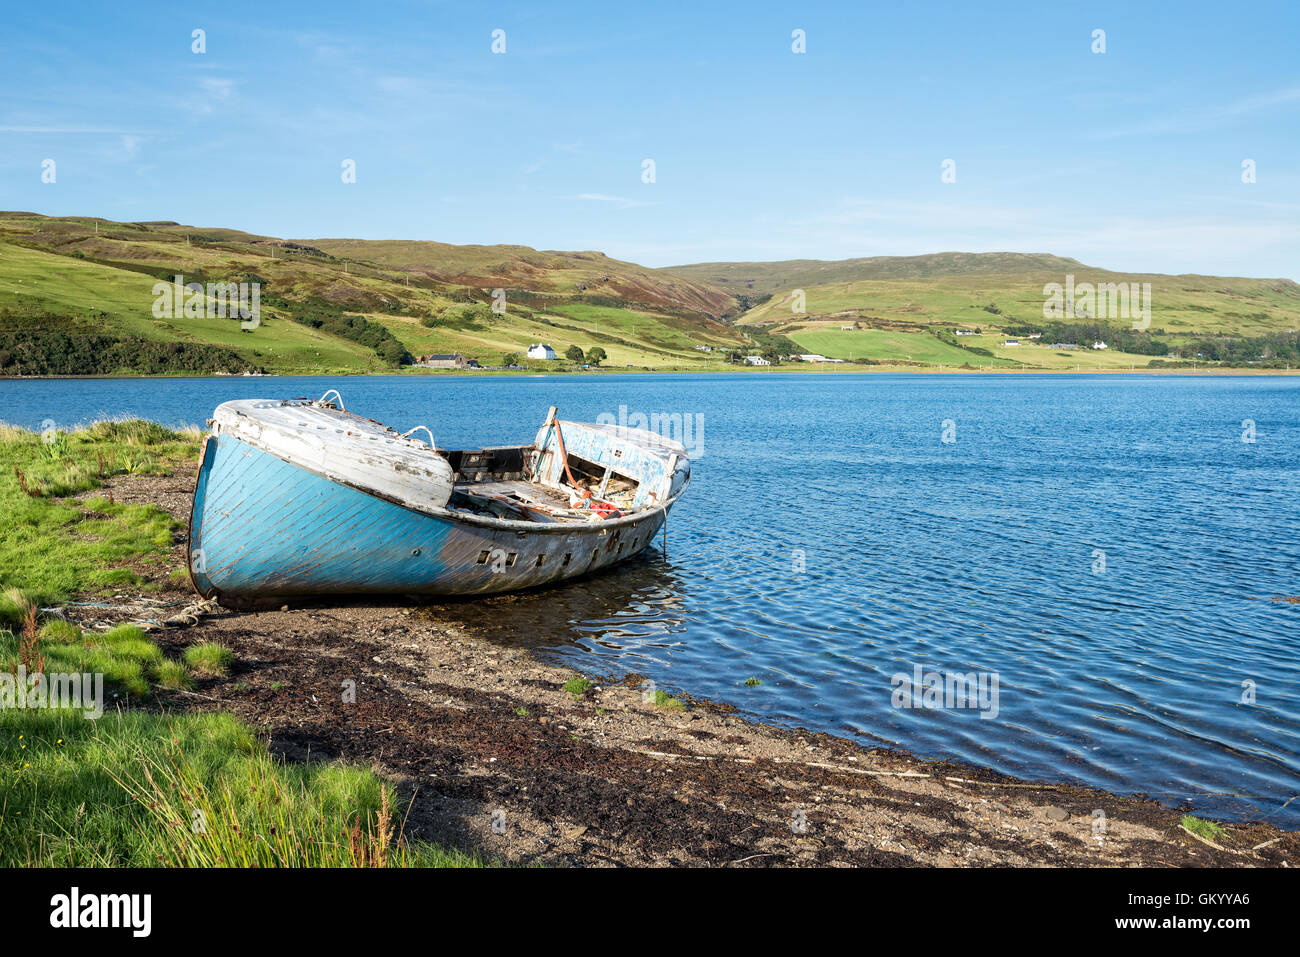 An old fishing boat on the shores of Loch Harport near Drynoch on the Isle of Skye in Scotland Stock Photo